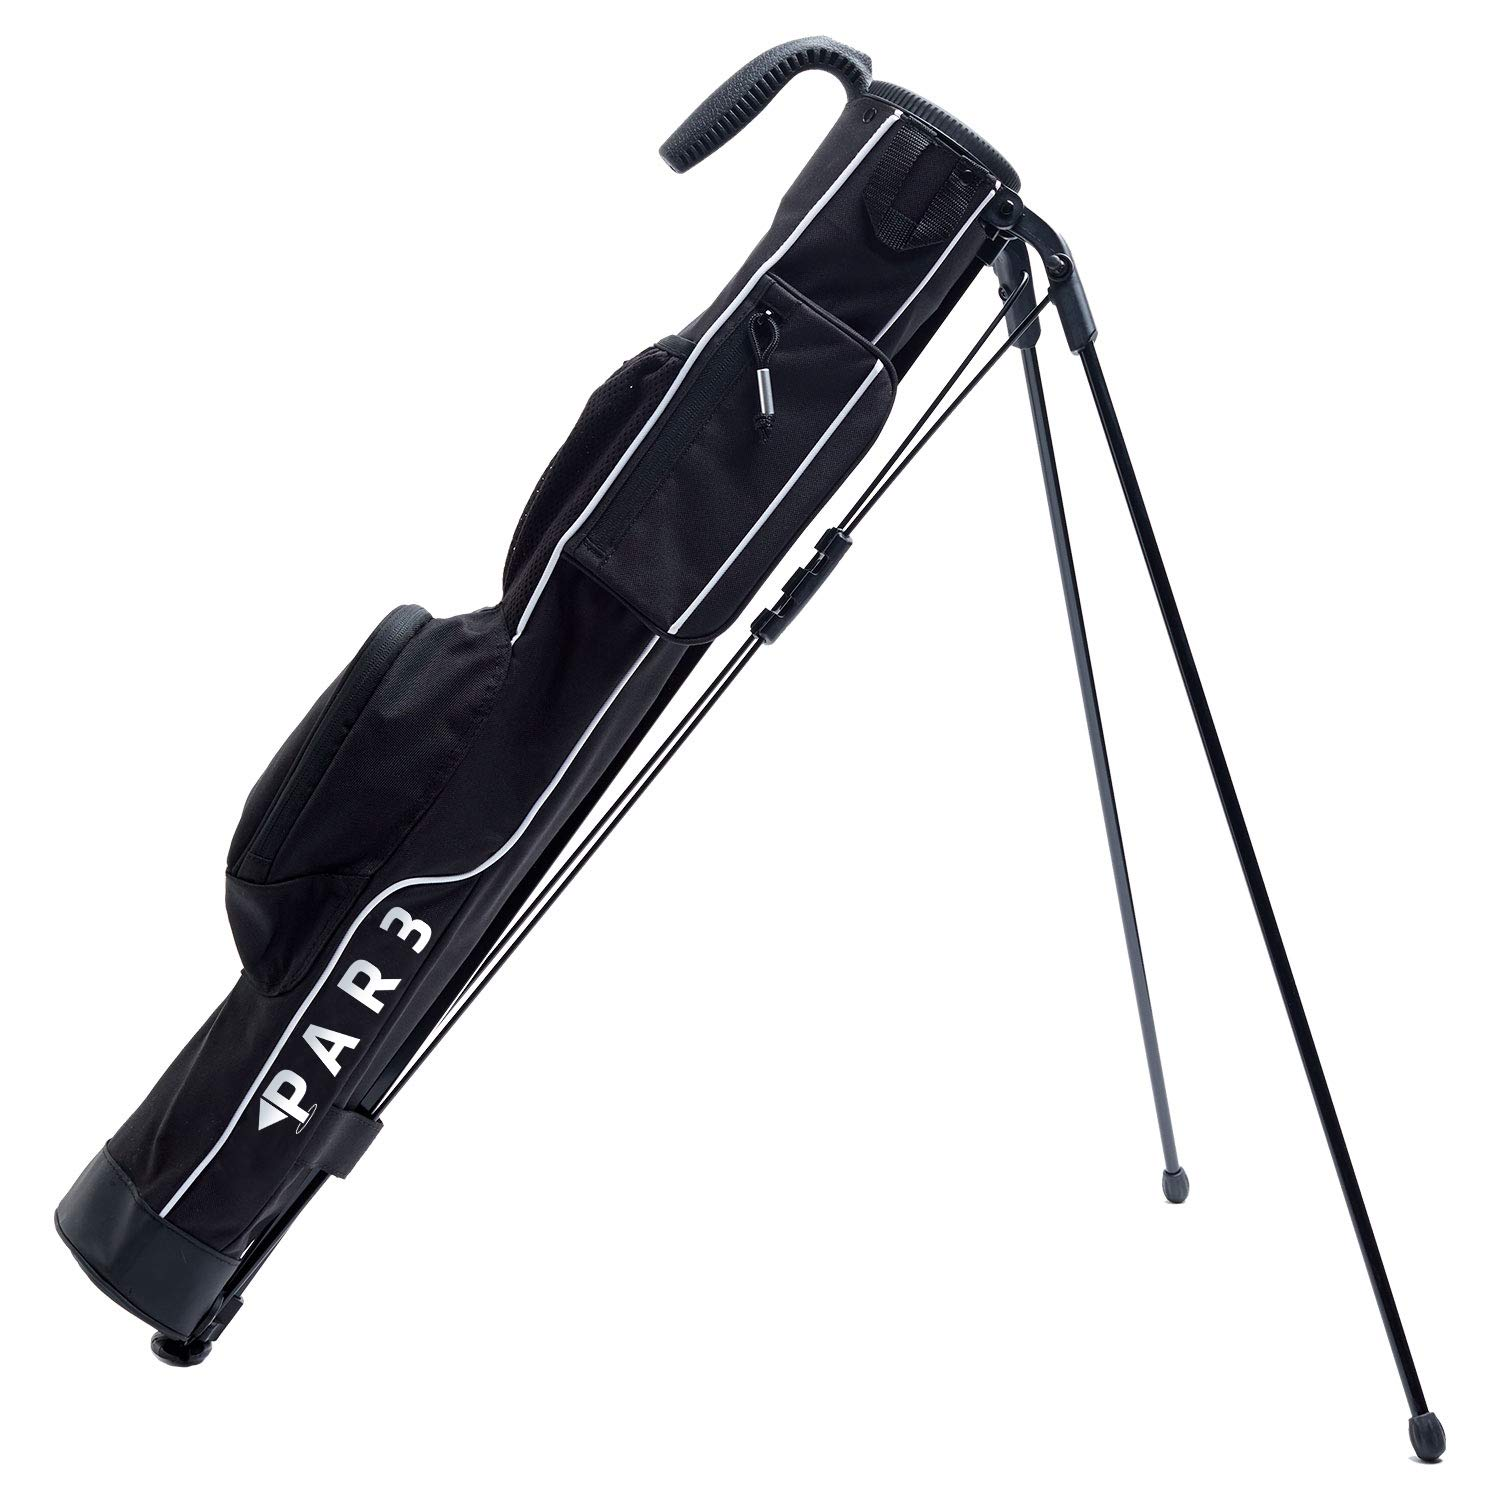 Par3 Golf [New] Lightweight Sunday Golf Bag with Stand - Easy to Carry & Durable Pitch n Putt Golf Bag - Golf Stand Bag for The Driving Range, Par 3 & Executive Courses - 31.5'' Tall